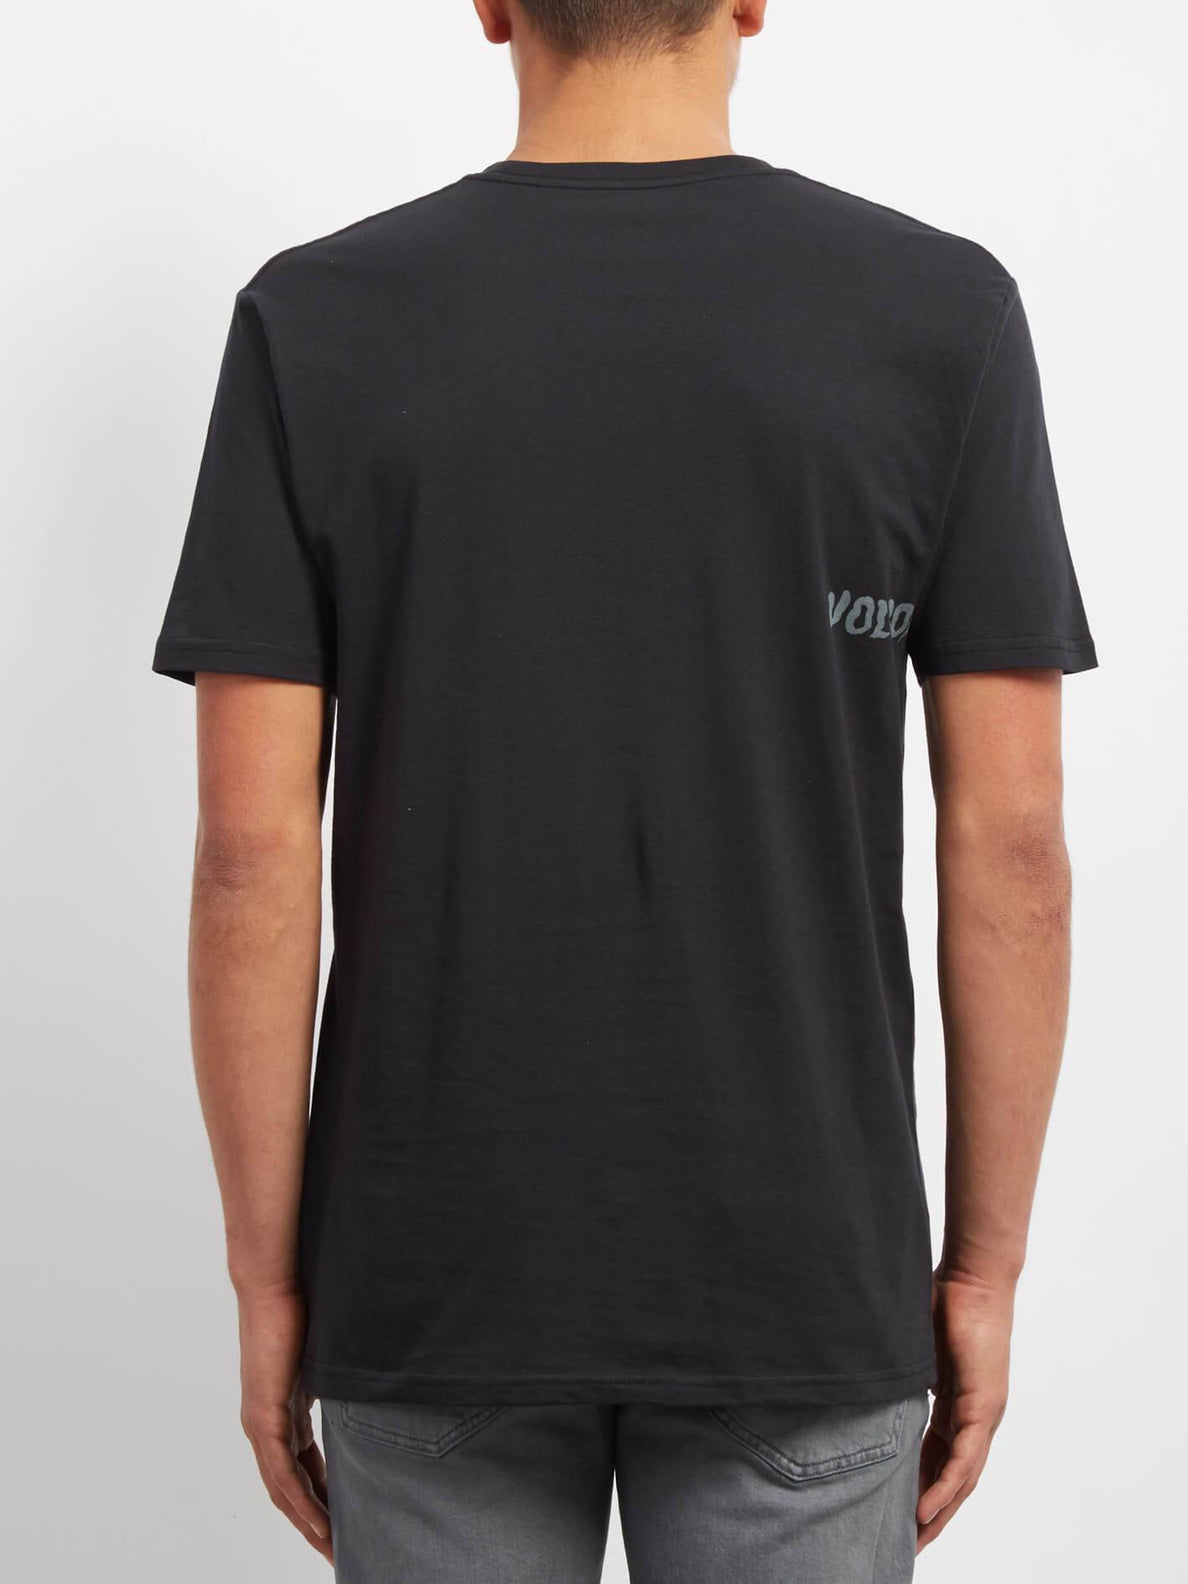 Wiggly T-shirt - Black